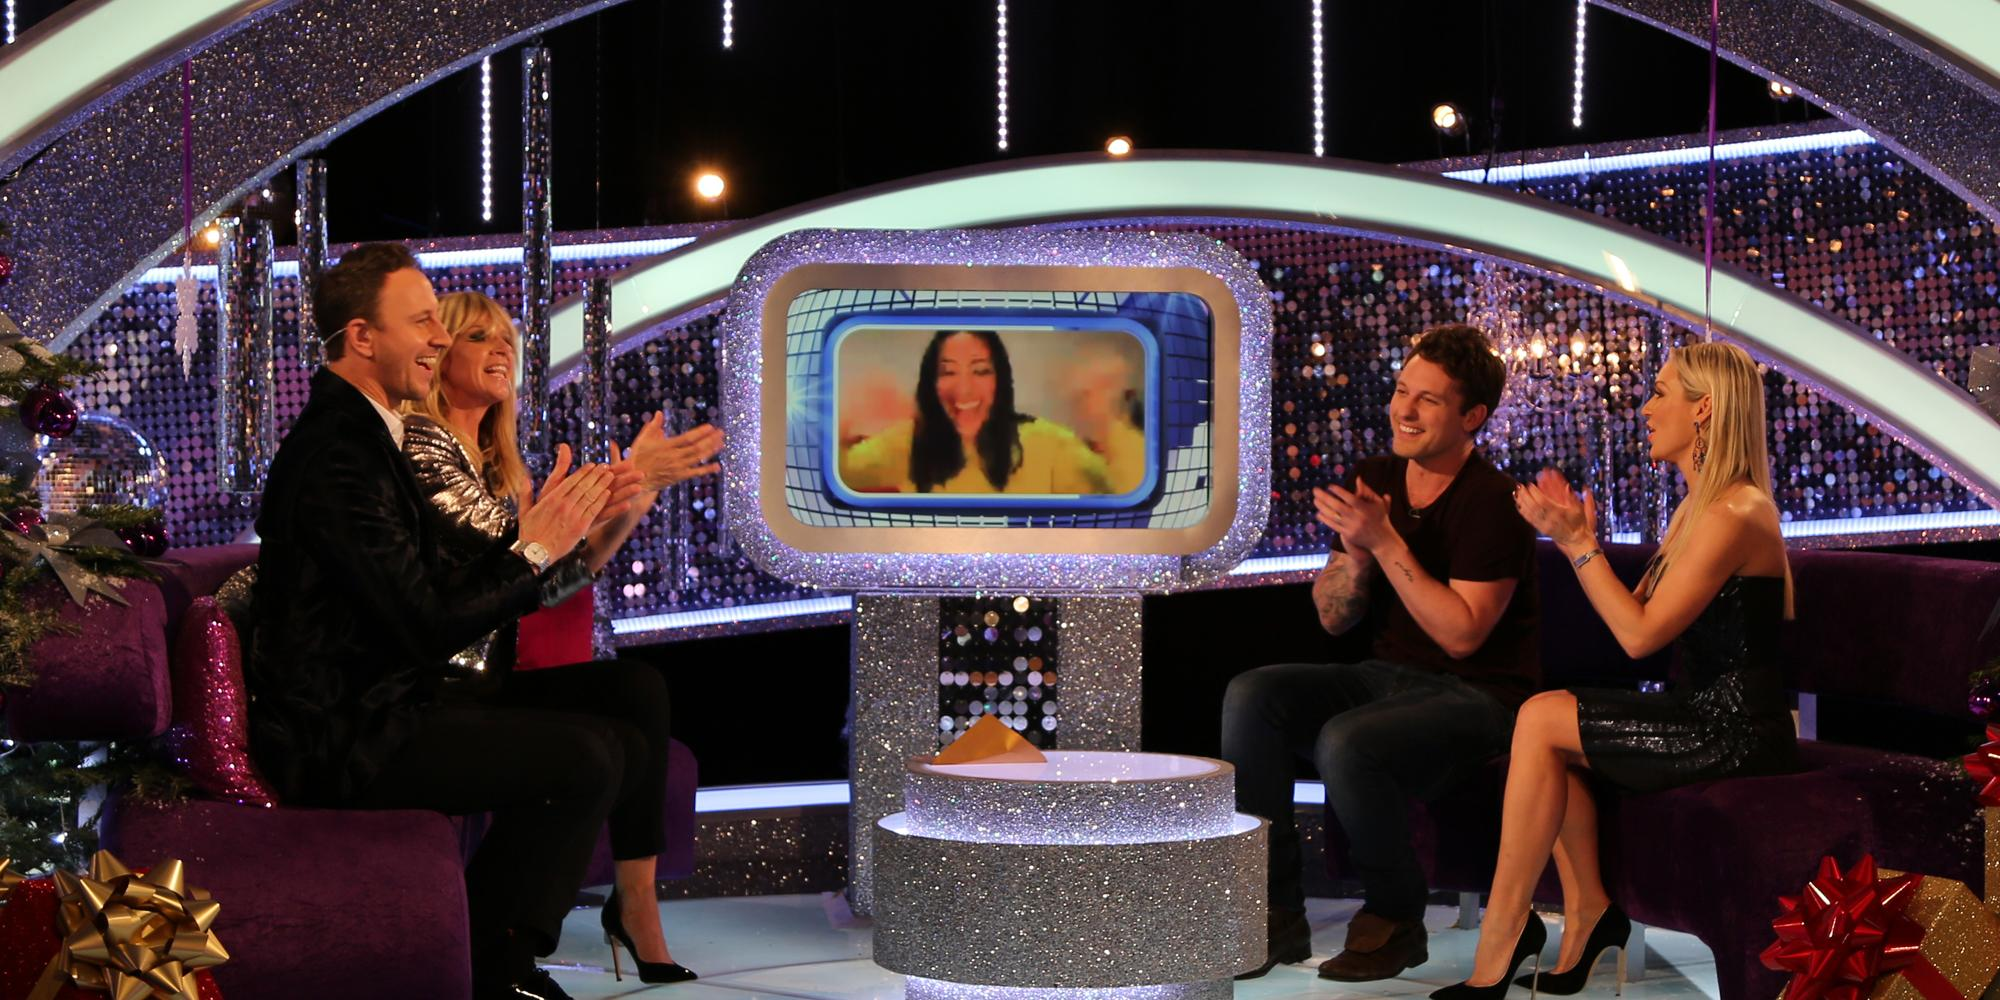 The moment @karen_hauer found out she was a @GWR holder! Congrats to her & @AljazSkorjanec #ITT http://t.co/9sKbdkQHch